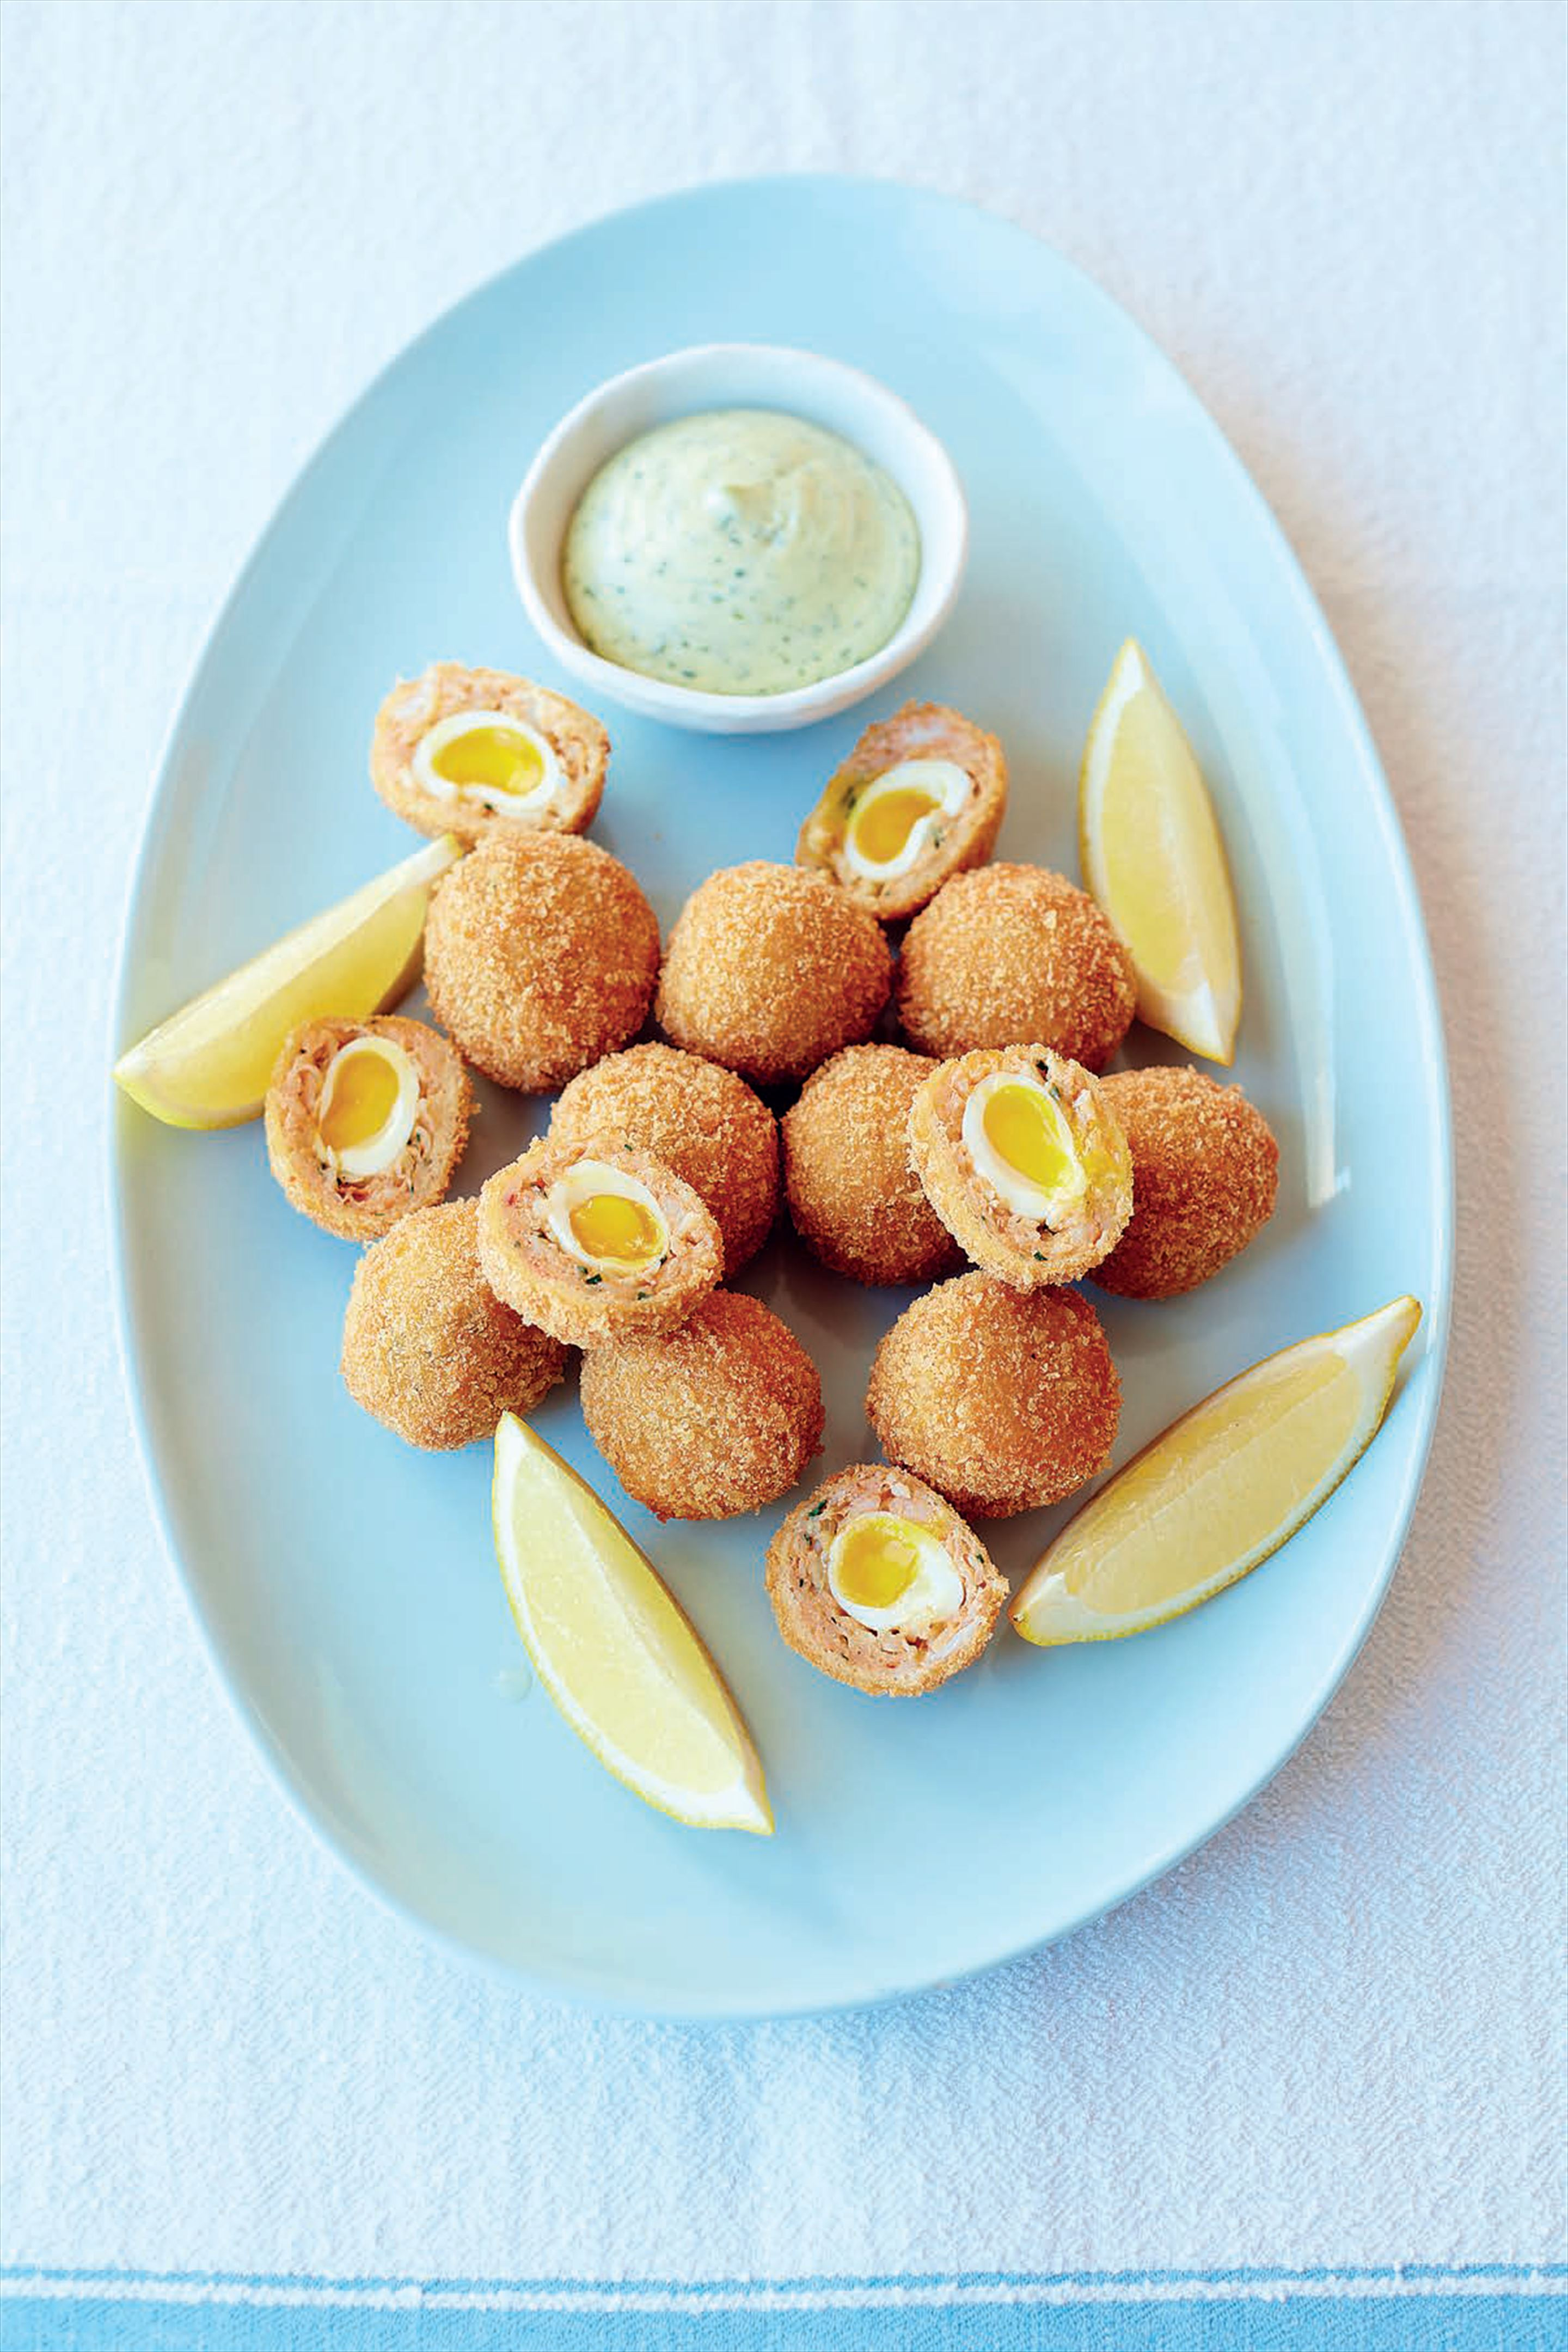 Crab Scotch quail's eggs with watercress mayonnaise